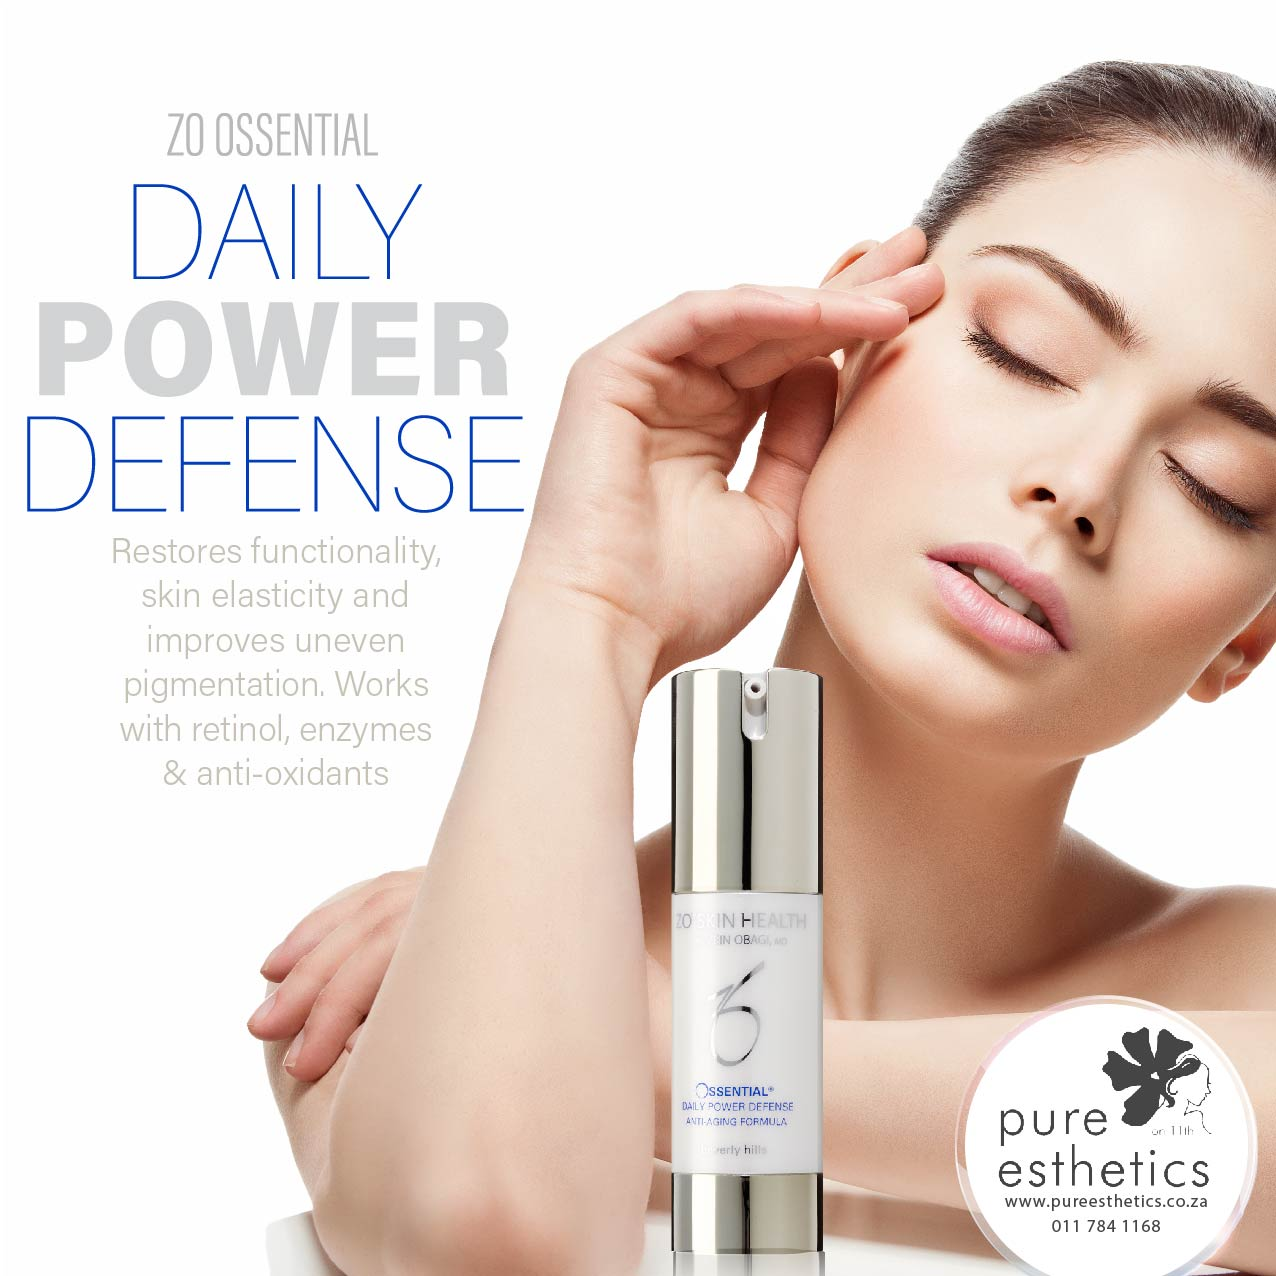 ZO OSSENTIAL DAILY POWER DEFENSE Restores functionality